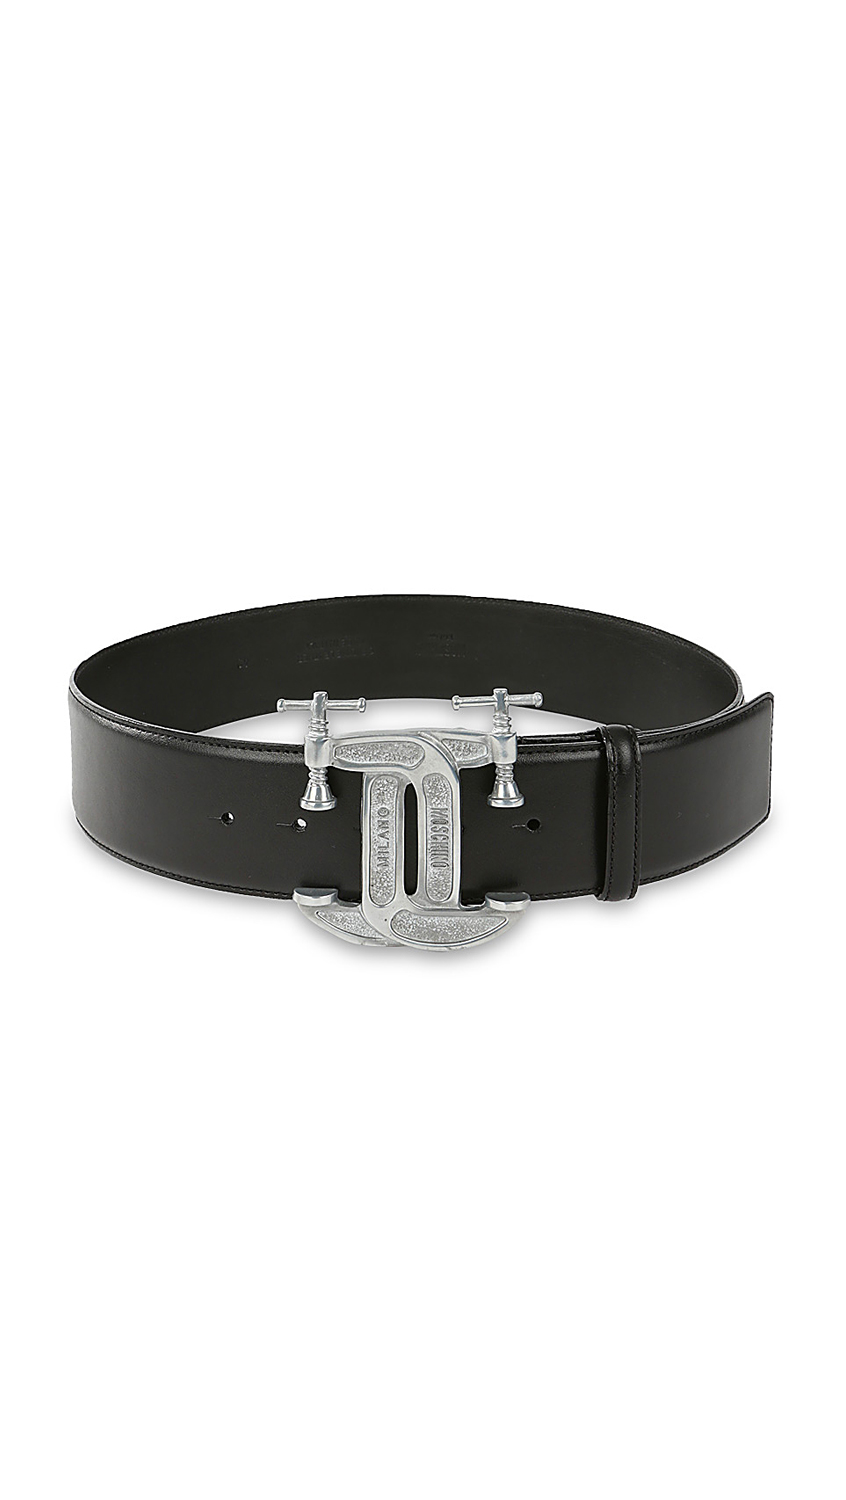 moschino leather belt in black lyst